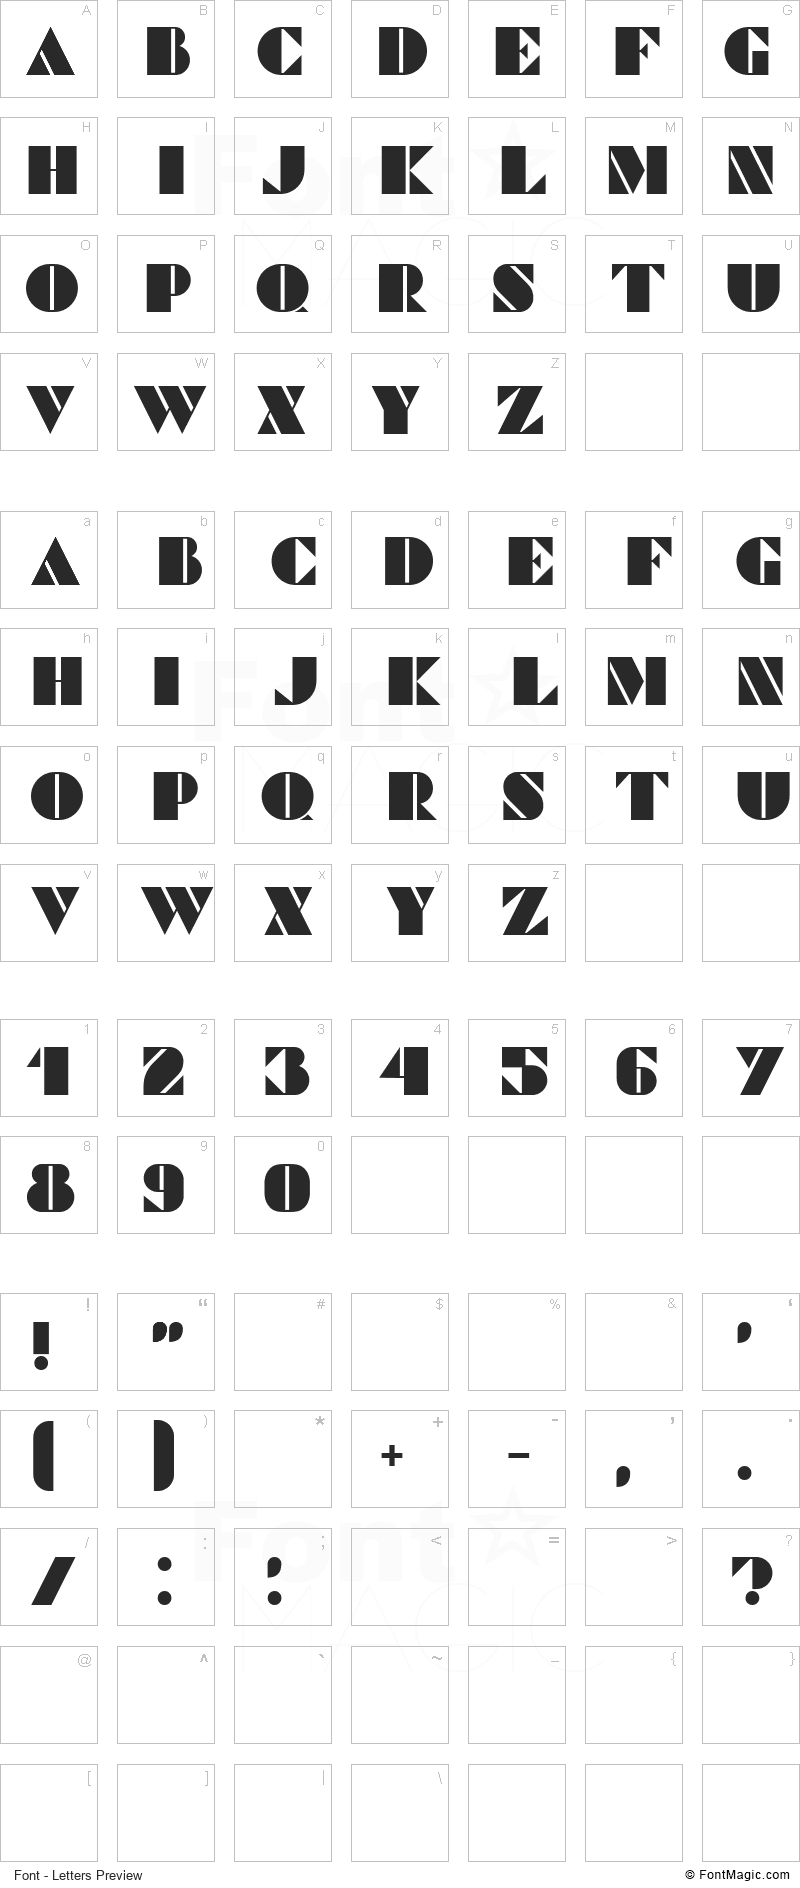 Commanders Font - All Latters Preview Chart